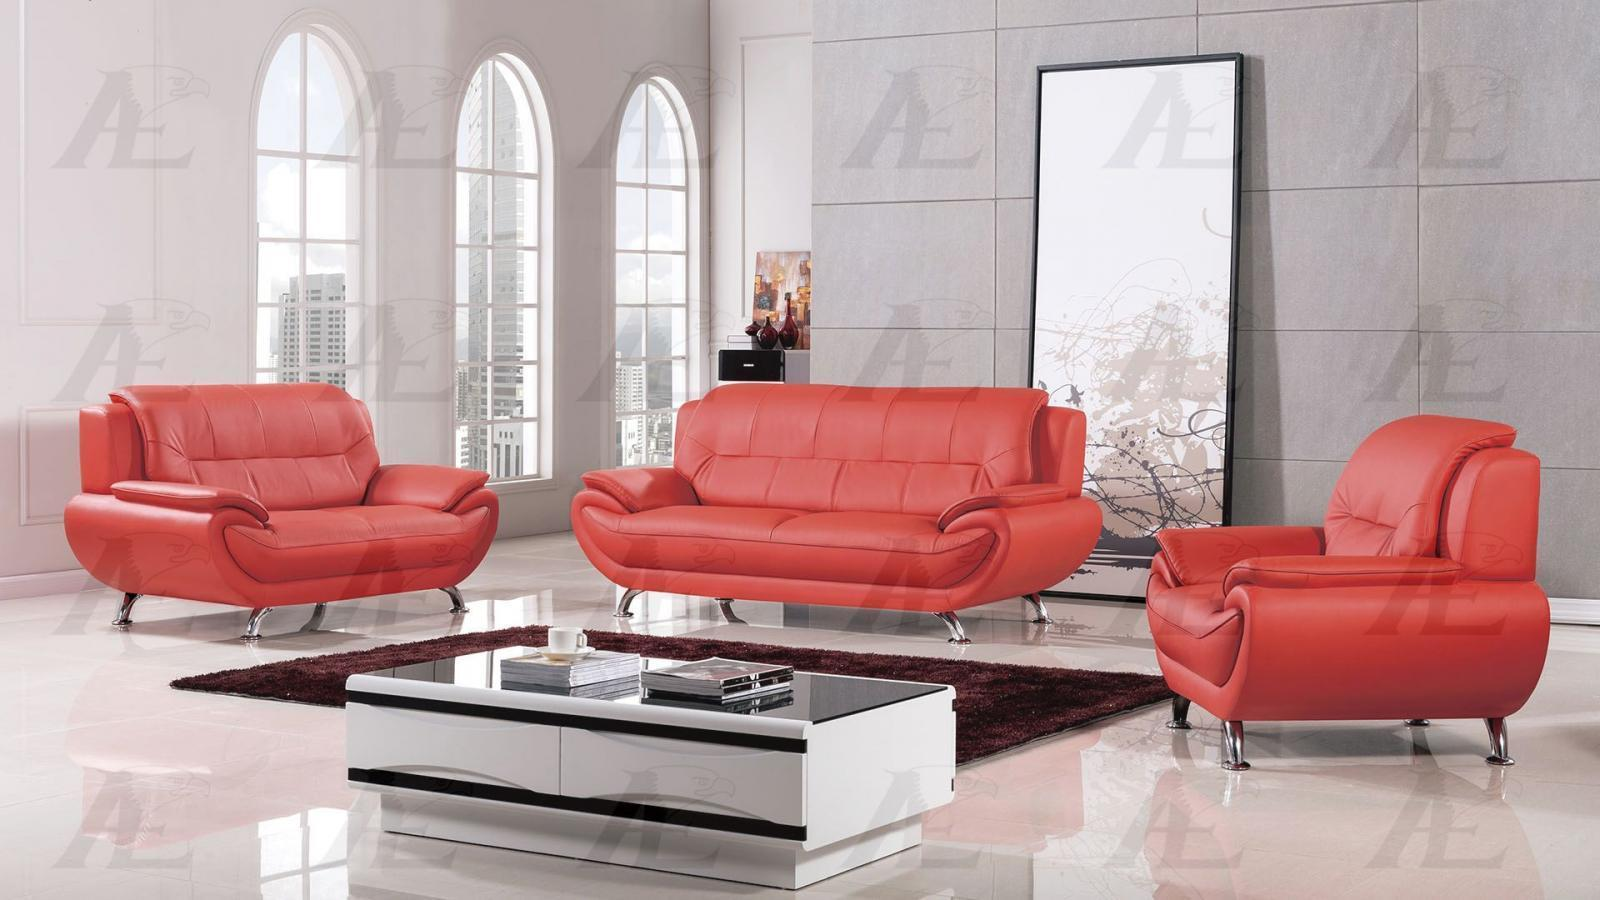 American Eagle AE208-RED Sofa Loveseat and Chair Set Bonded Leather 3Pcs